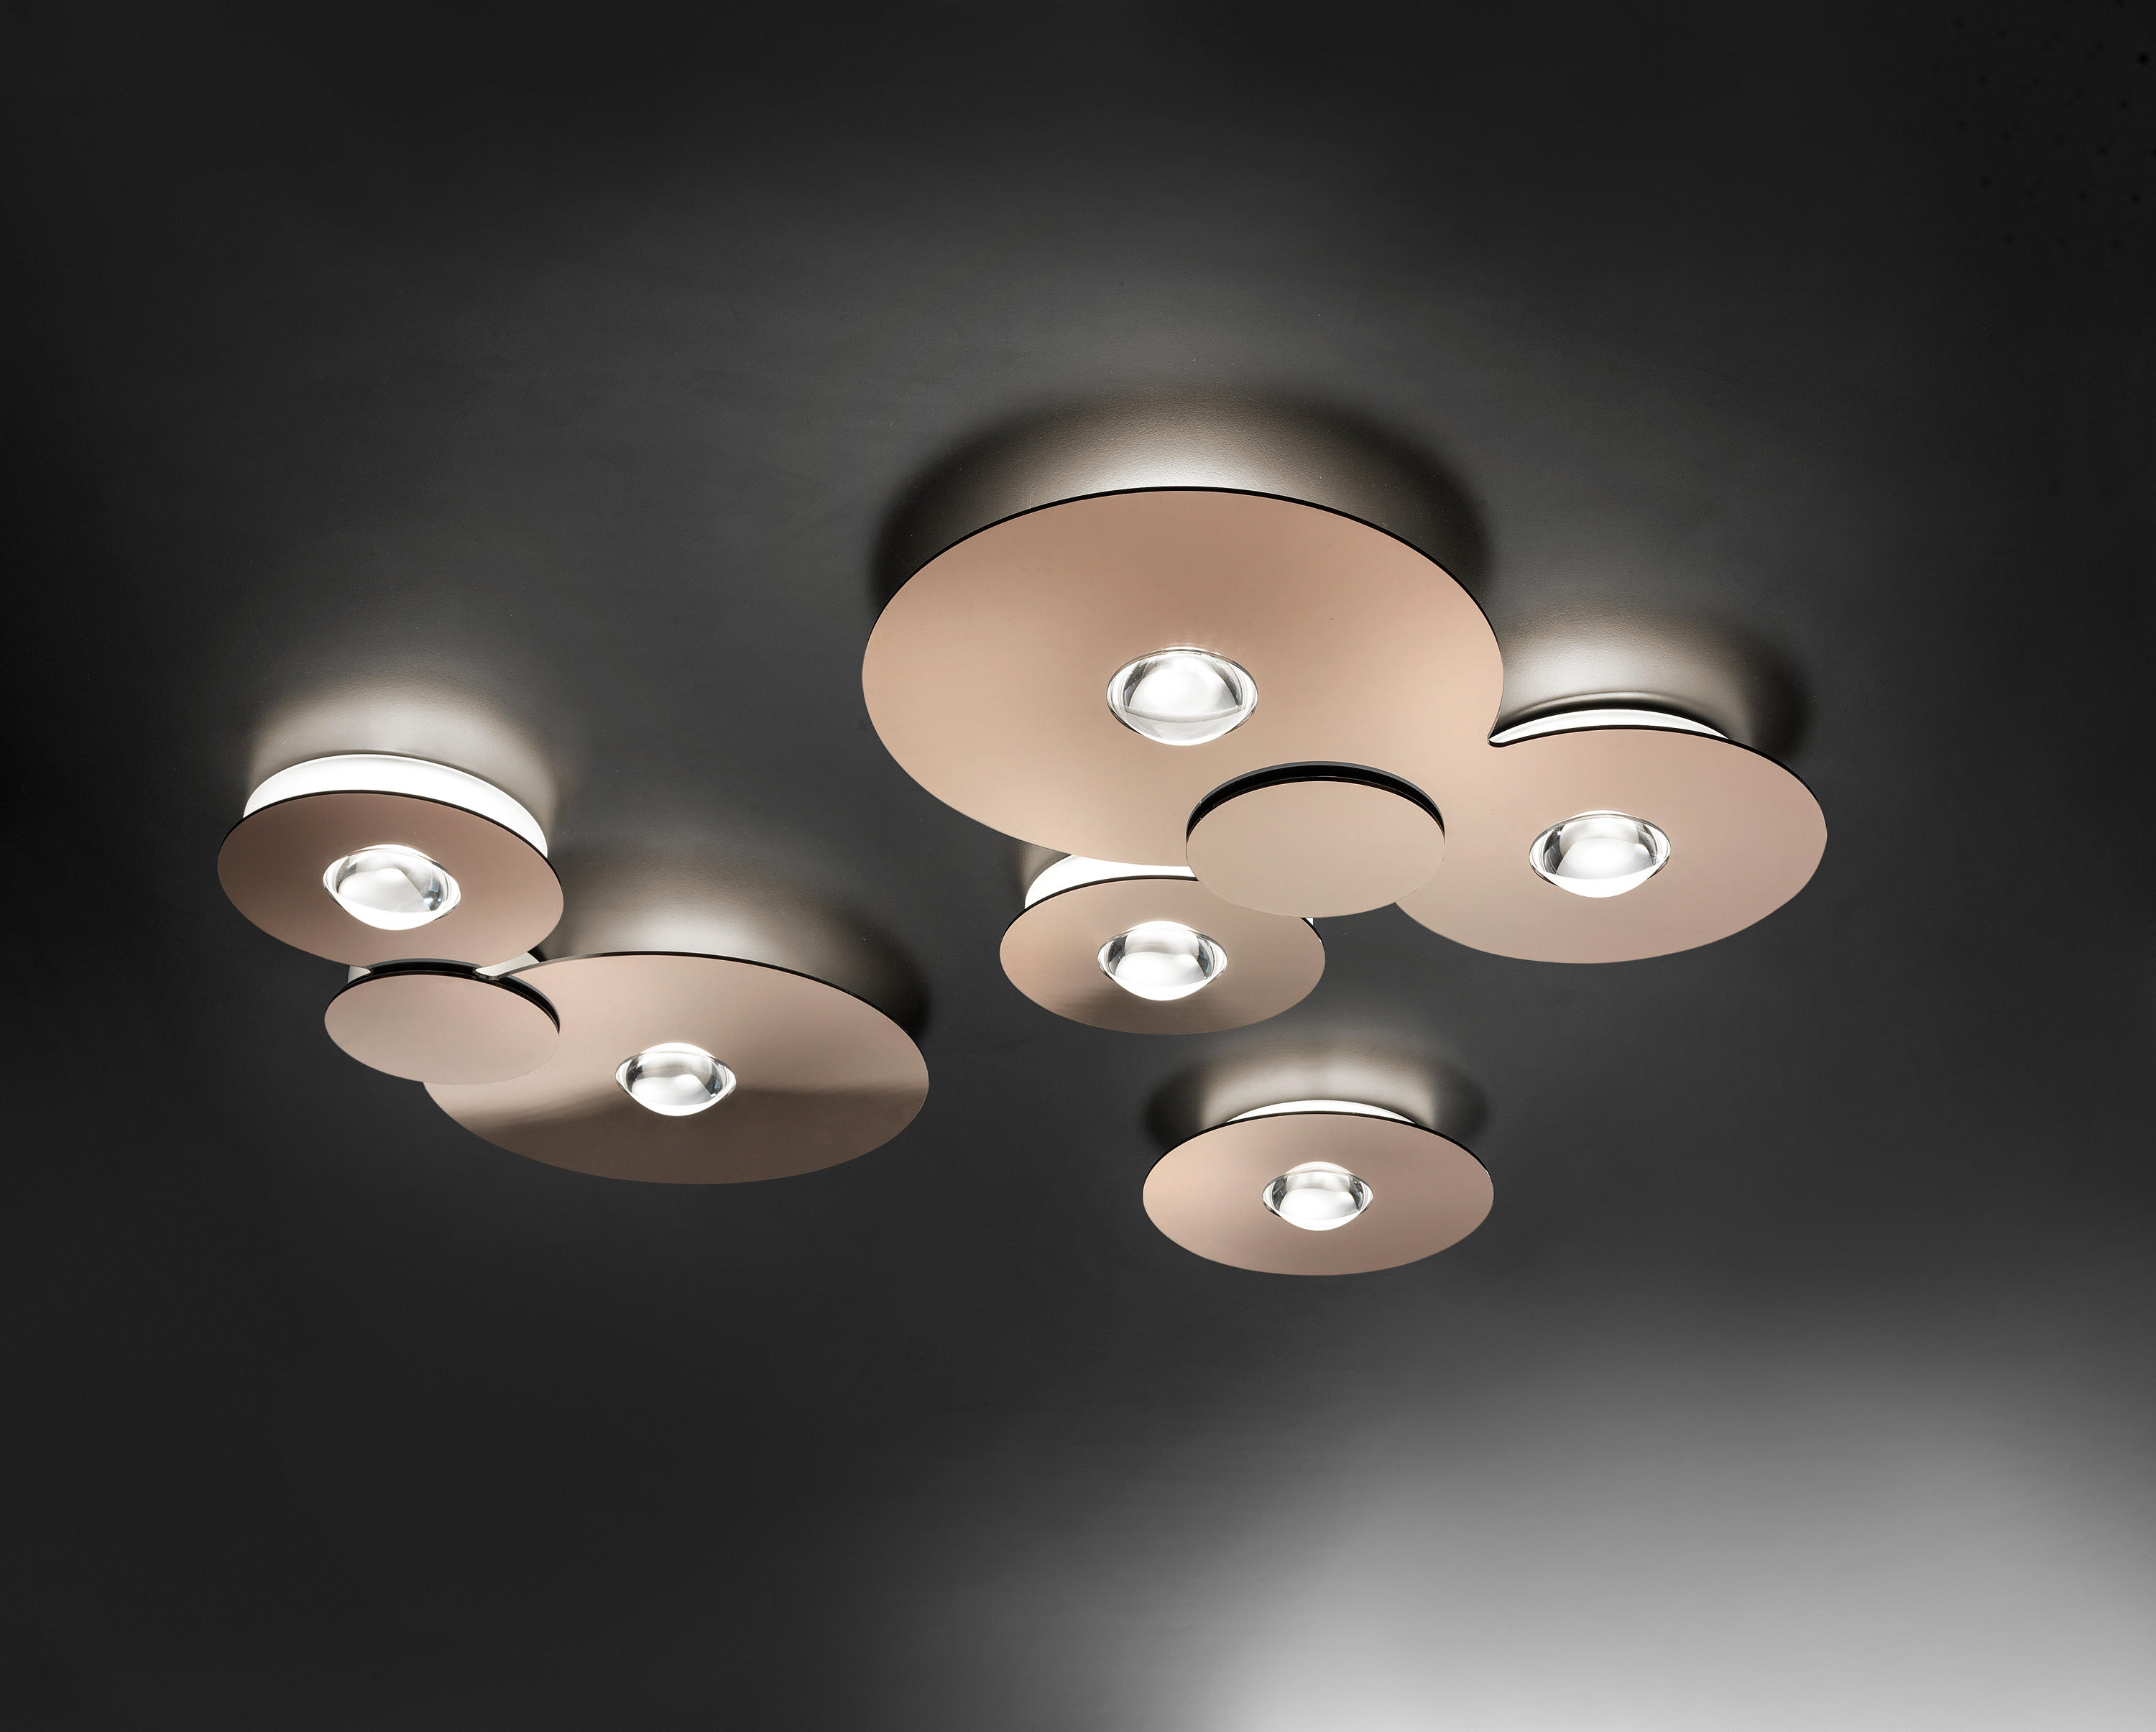 Studio italia lighting Tube Nano Bugia By Studio Italia Design Ceiling Lights Architonic Bugia Ceiling Lights From Studio Italia Design Architonic